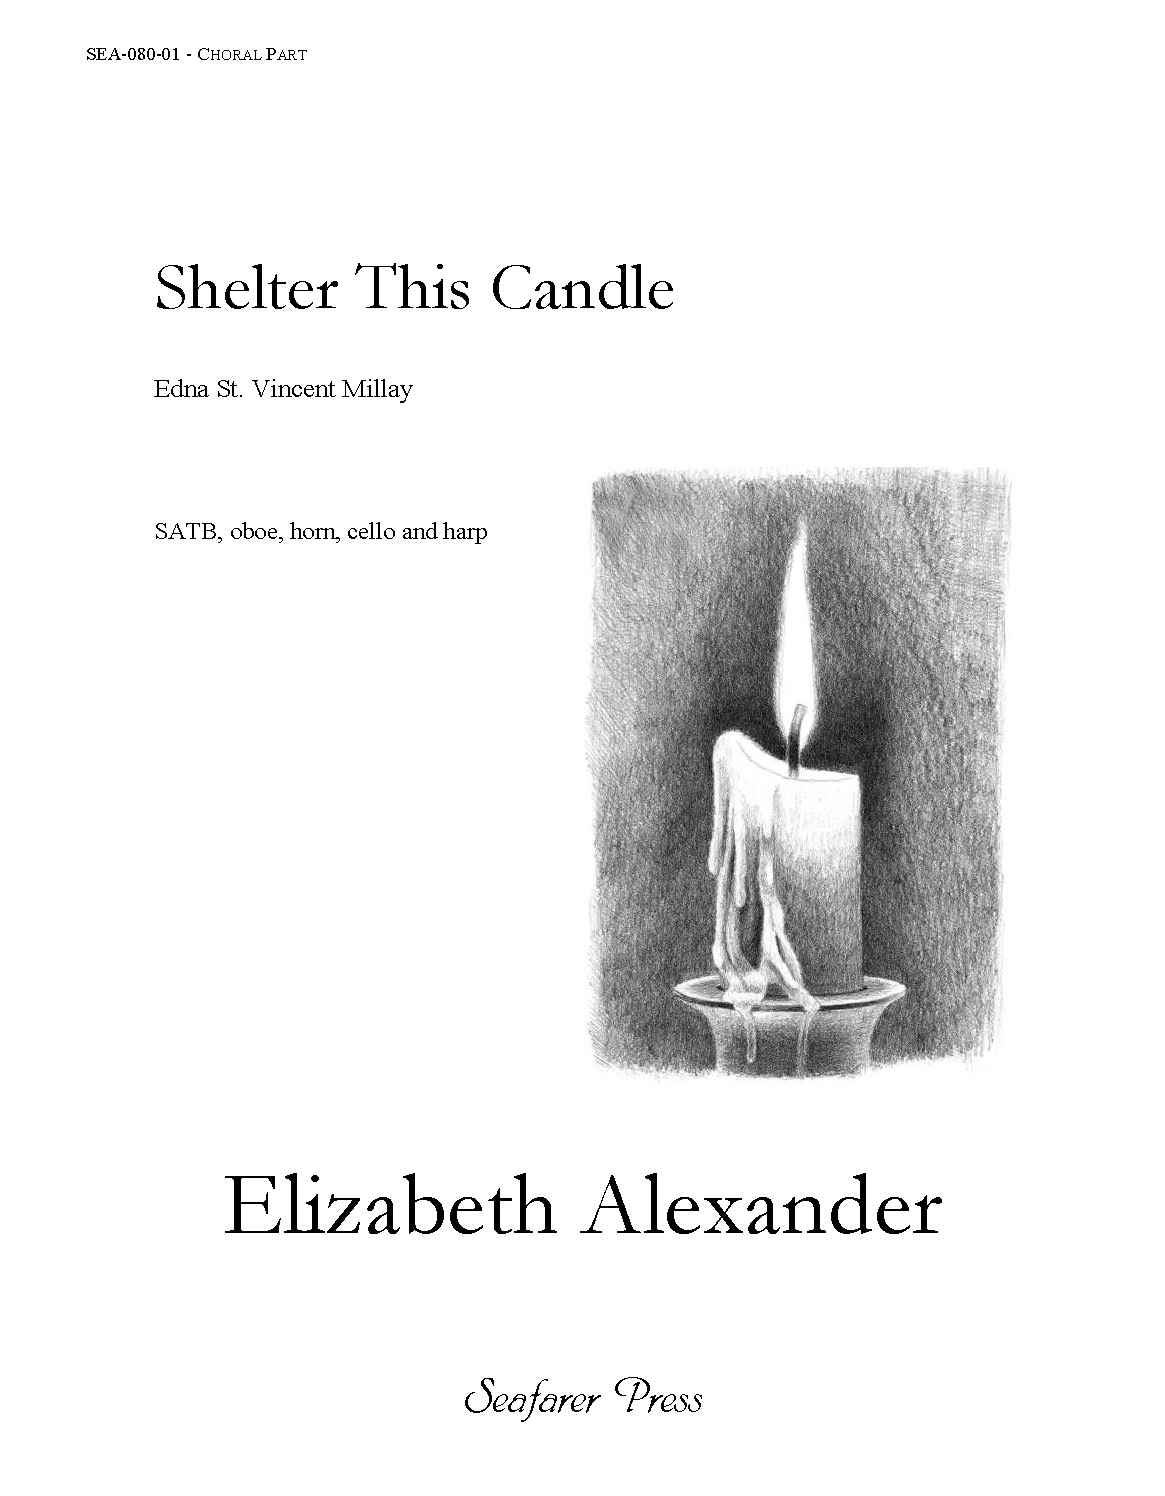 SEA-080-02F - Shelter This Candle